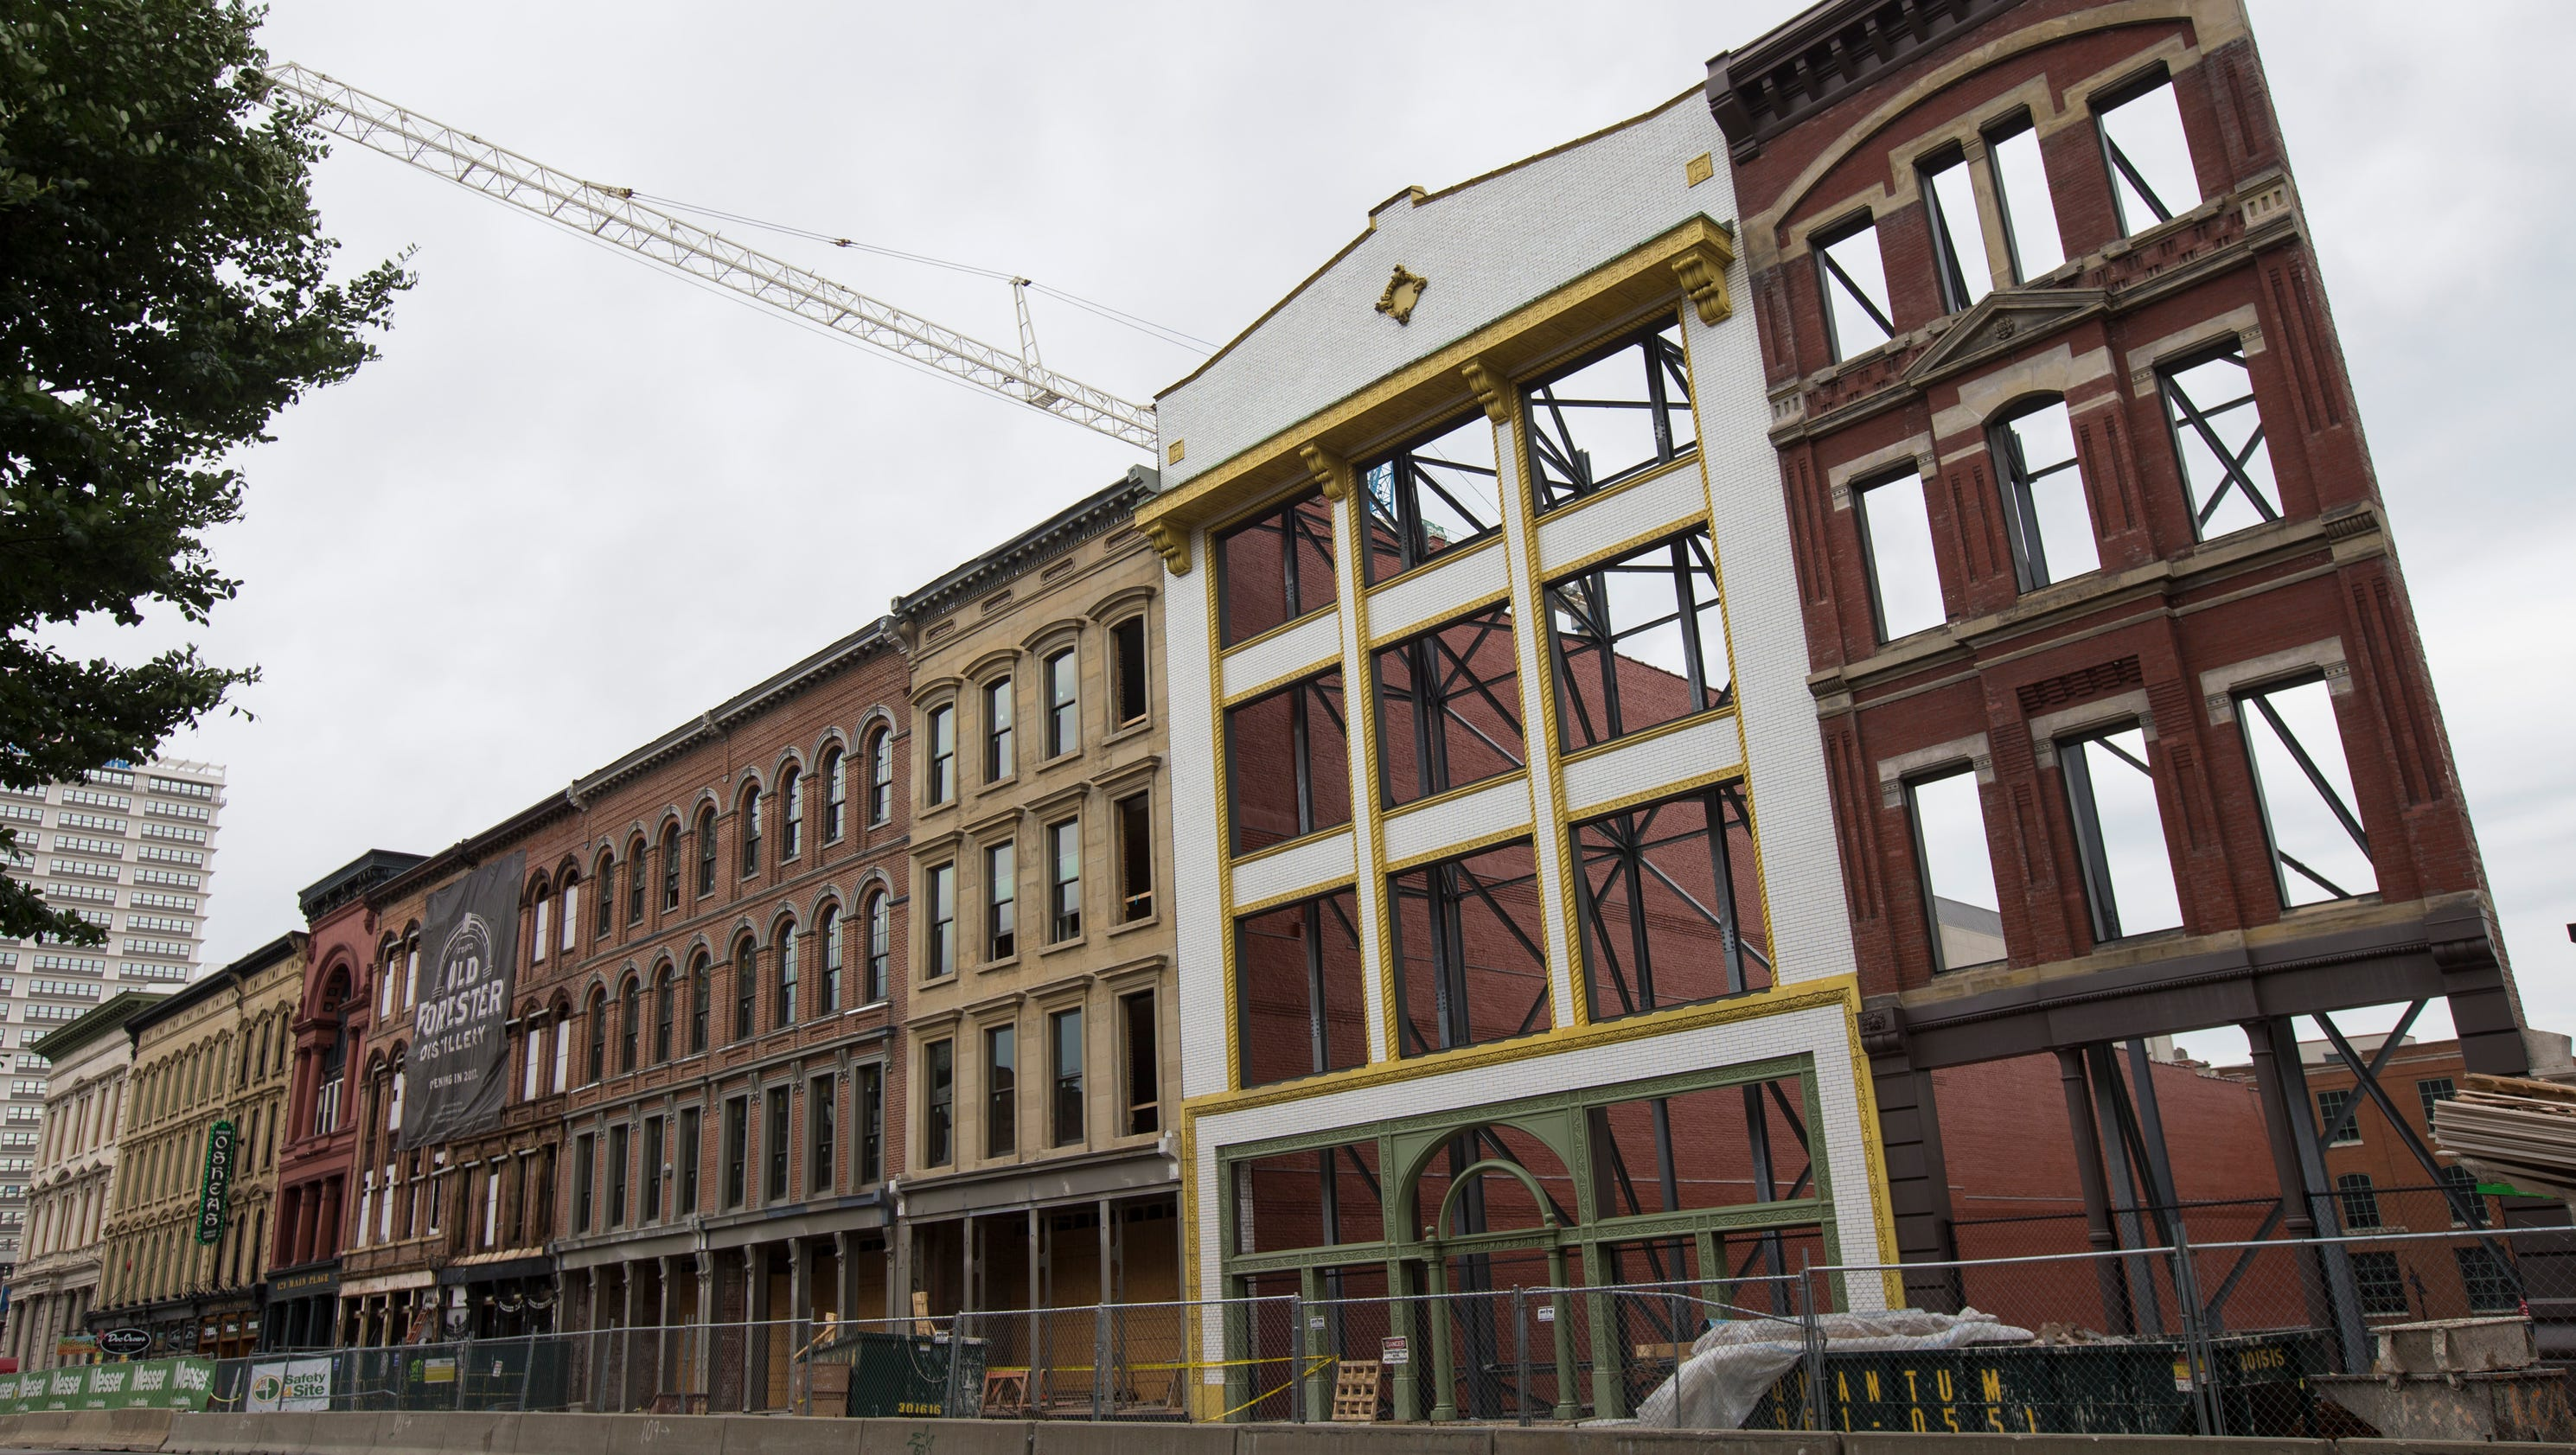 Louisville S Whiskey Row On Way To Becoming Bourbon Tourism Mecca